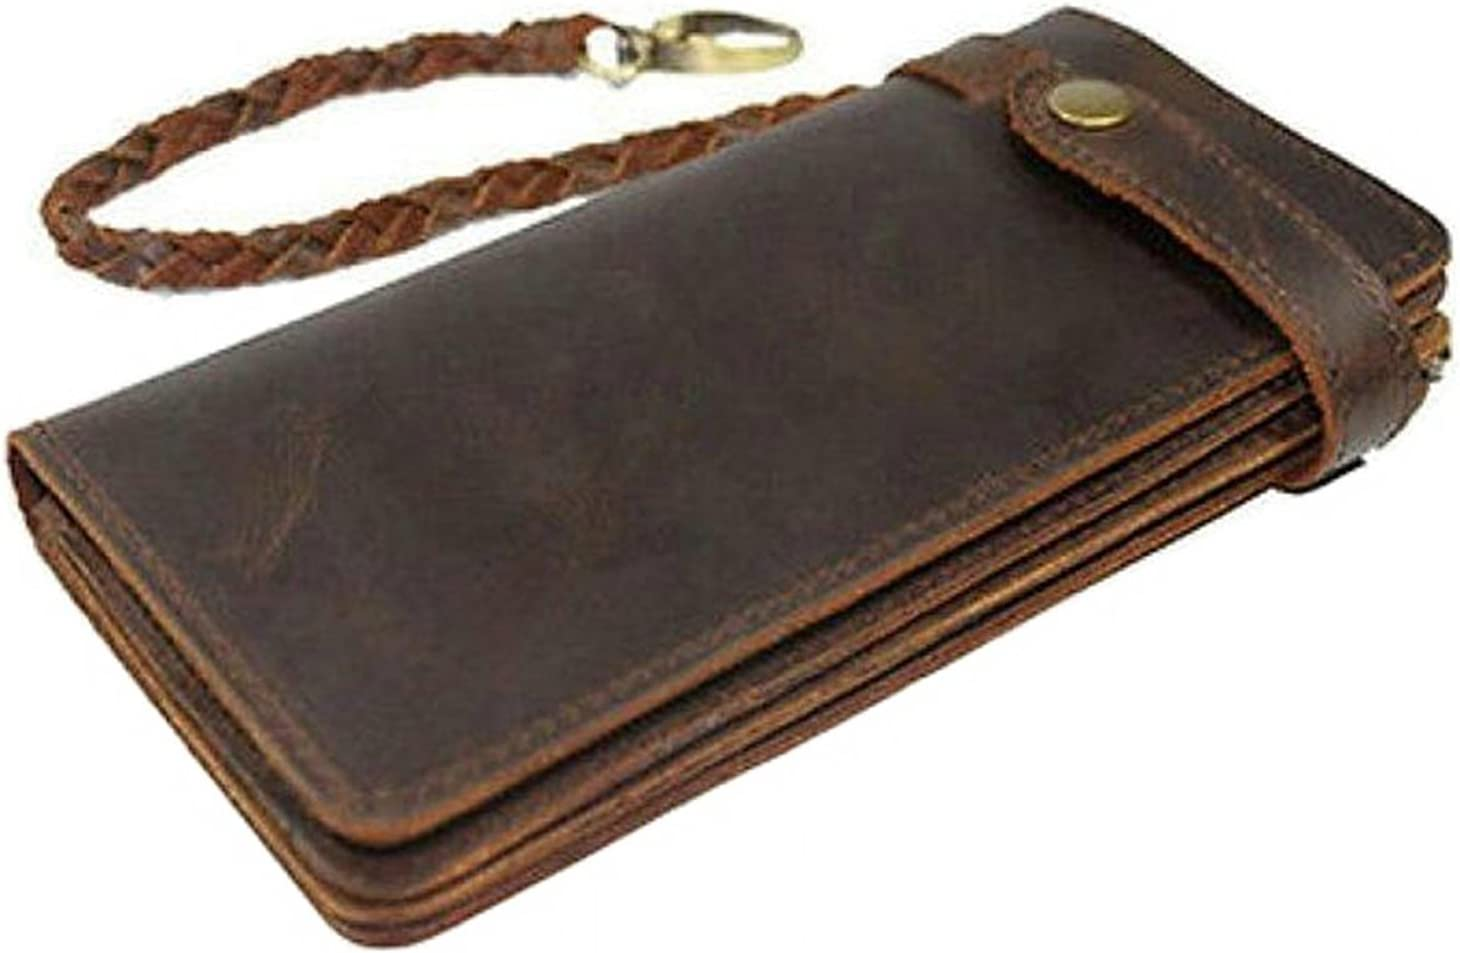 Itslife Mens Wallet RFID Blocking Vintage Long Style Cow Leather with Chain Card Holder Wallets for Men